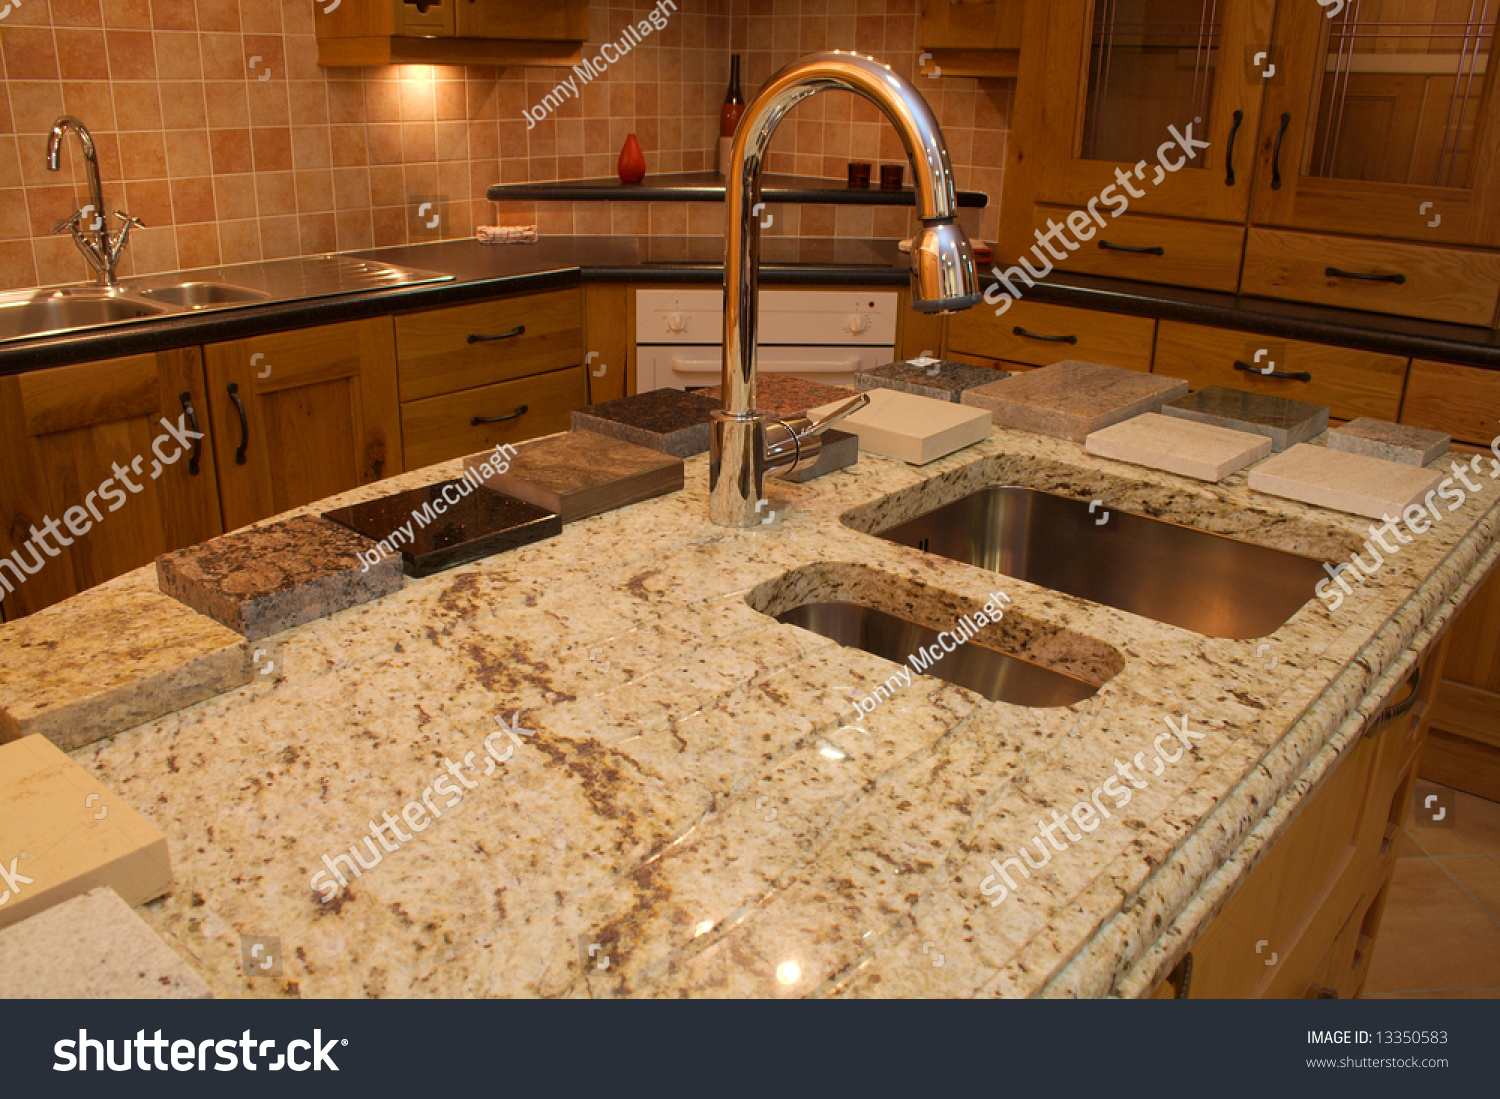 Kitchen Granite Worktop Warm Modern Contemporary Kitchen Showing Granite Stock Photo